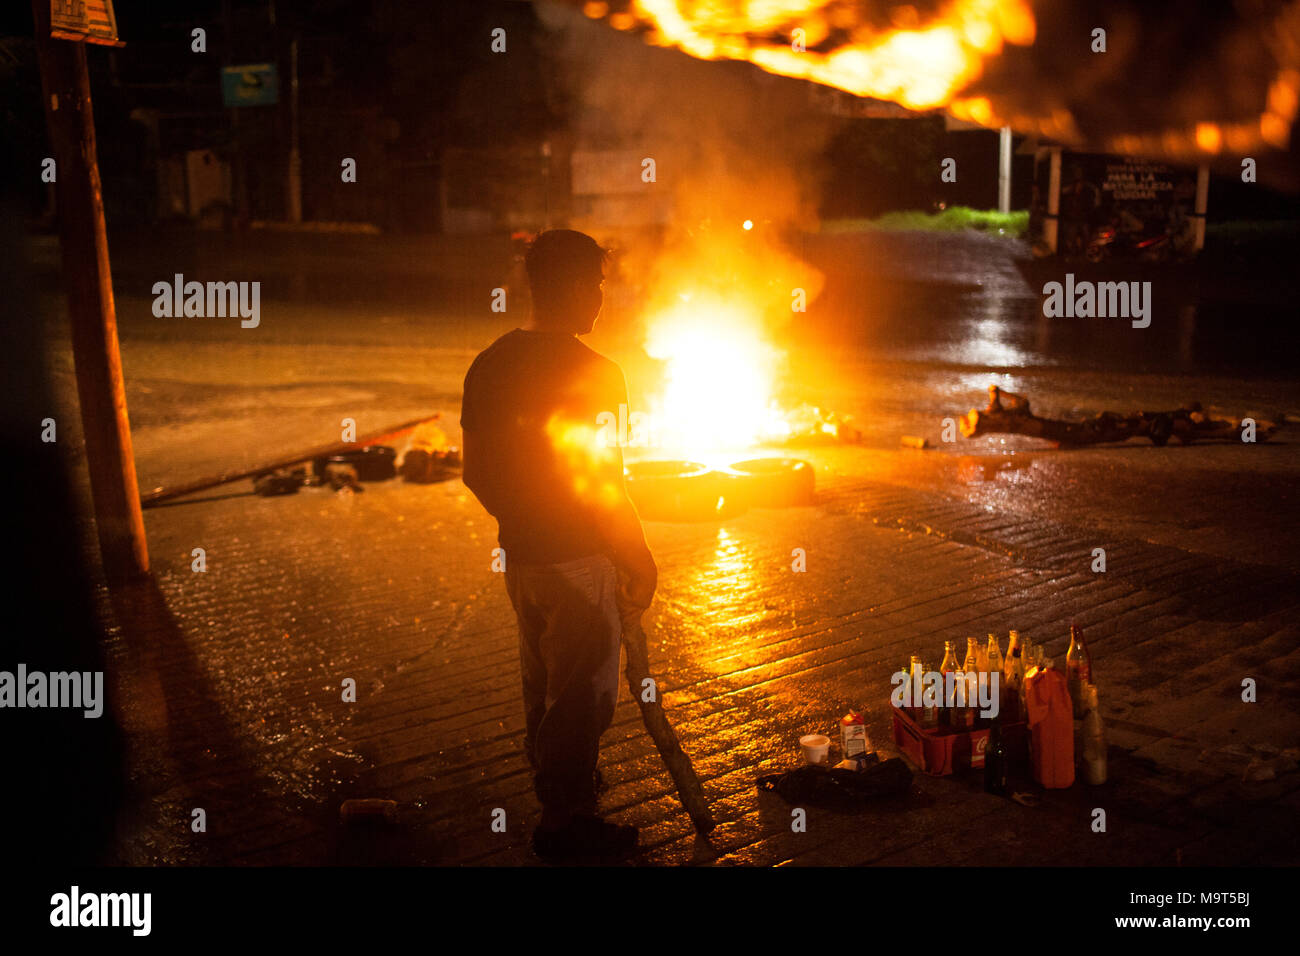 A man watches a fire outside a barricade blocking access to a barrio in Tixtla, Guerrero, Mexico on June 7, 2015.   The barricade was set up the day before midterm elections to prevent police or rival political militia groups entering the barrio. - Stock Image